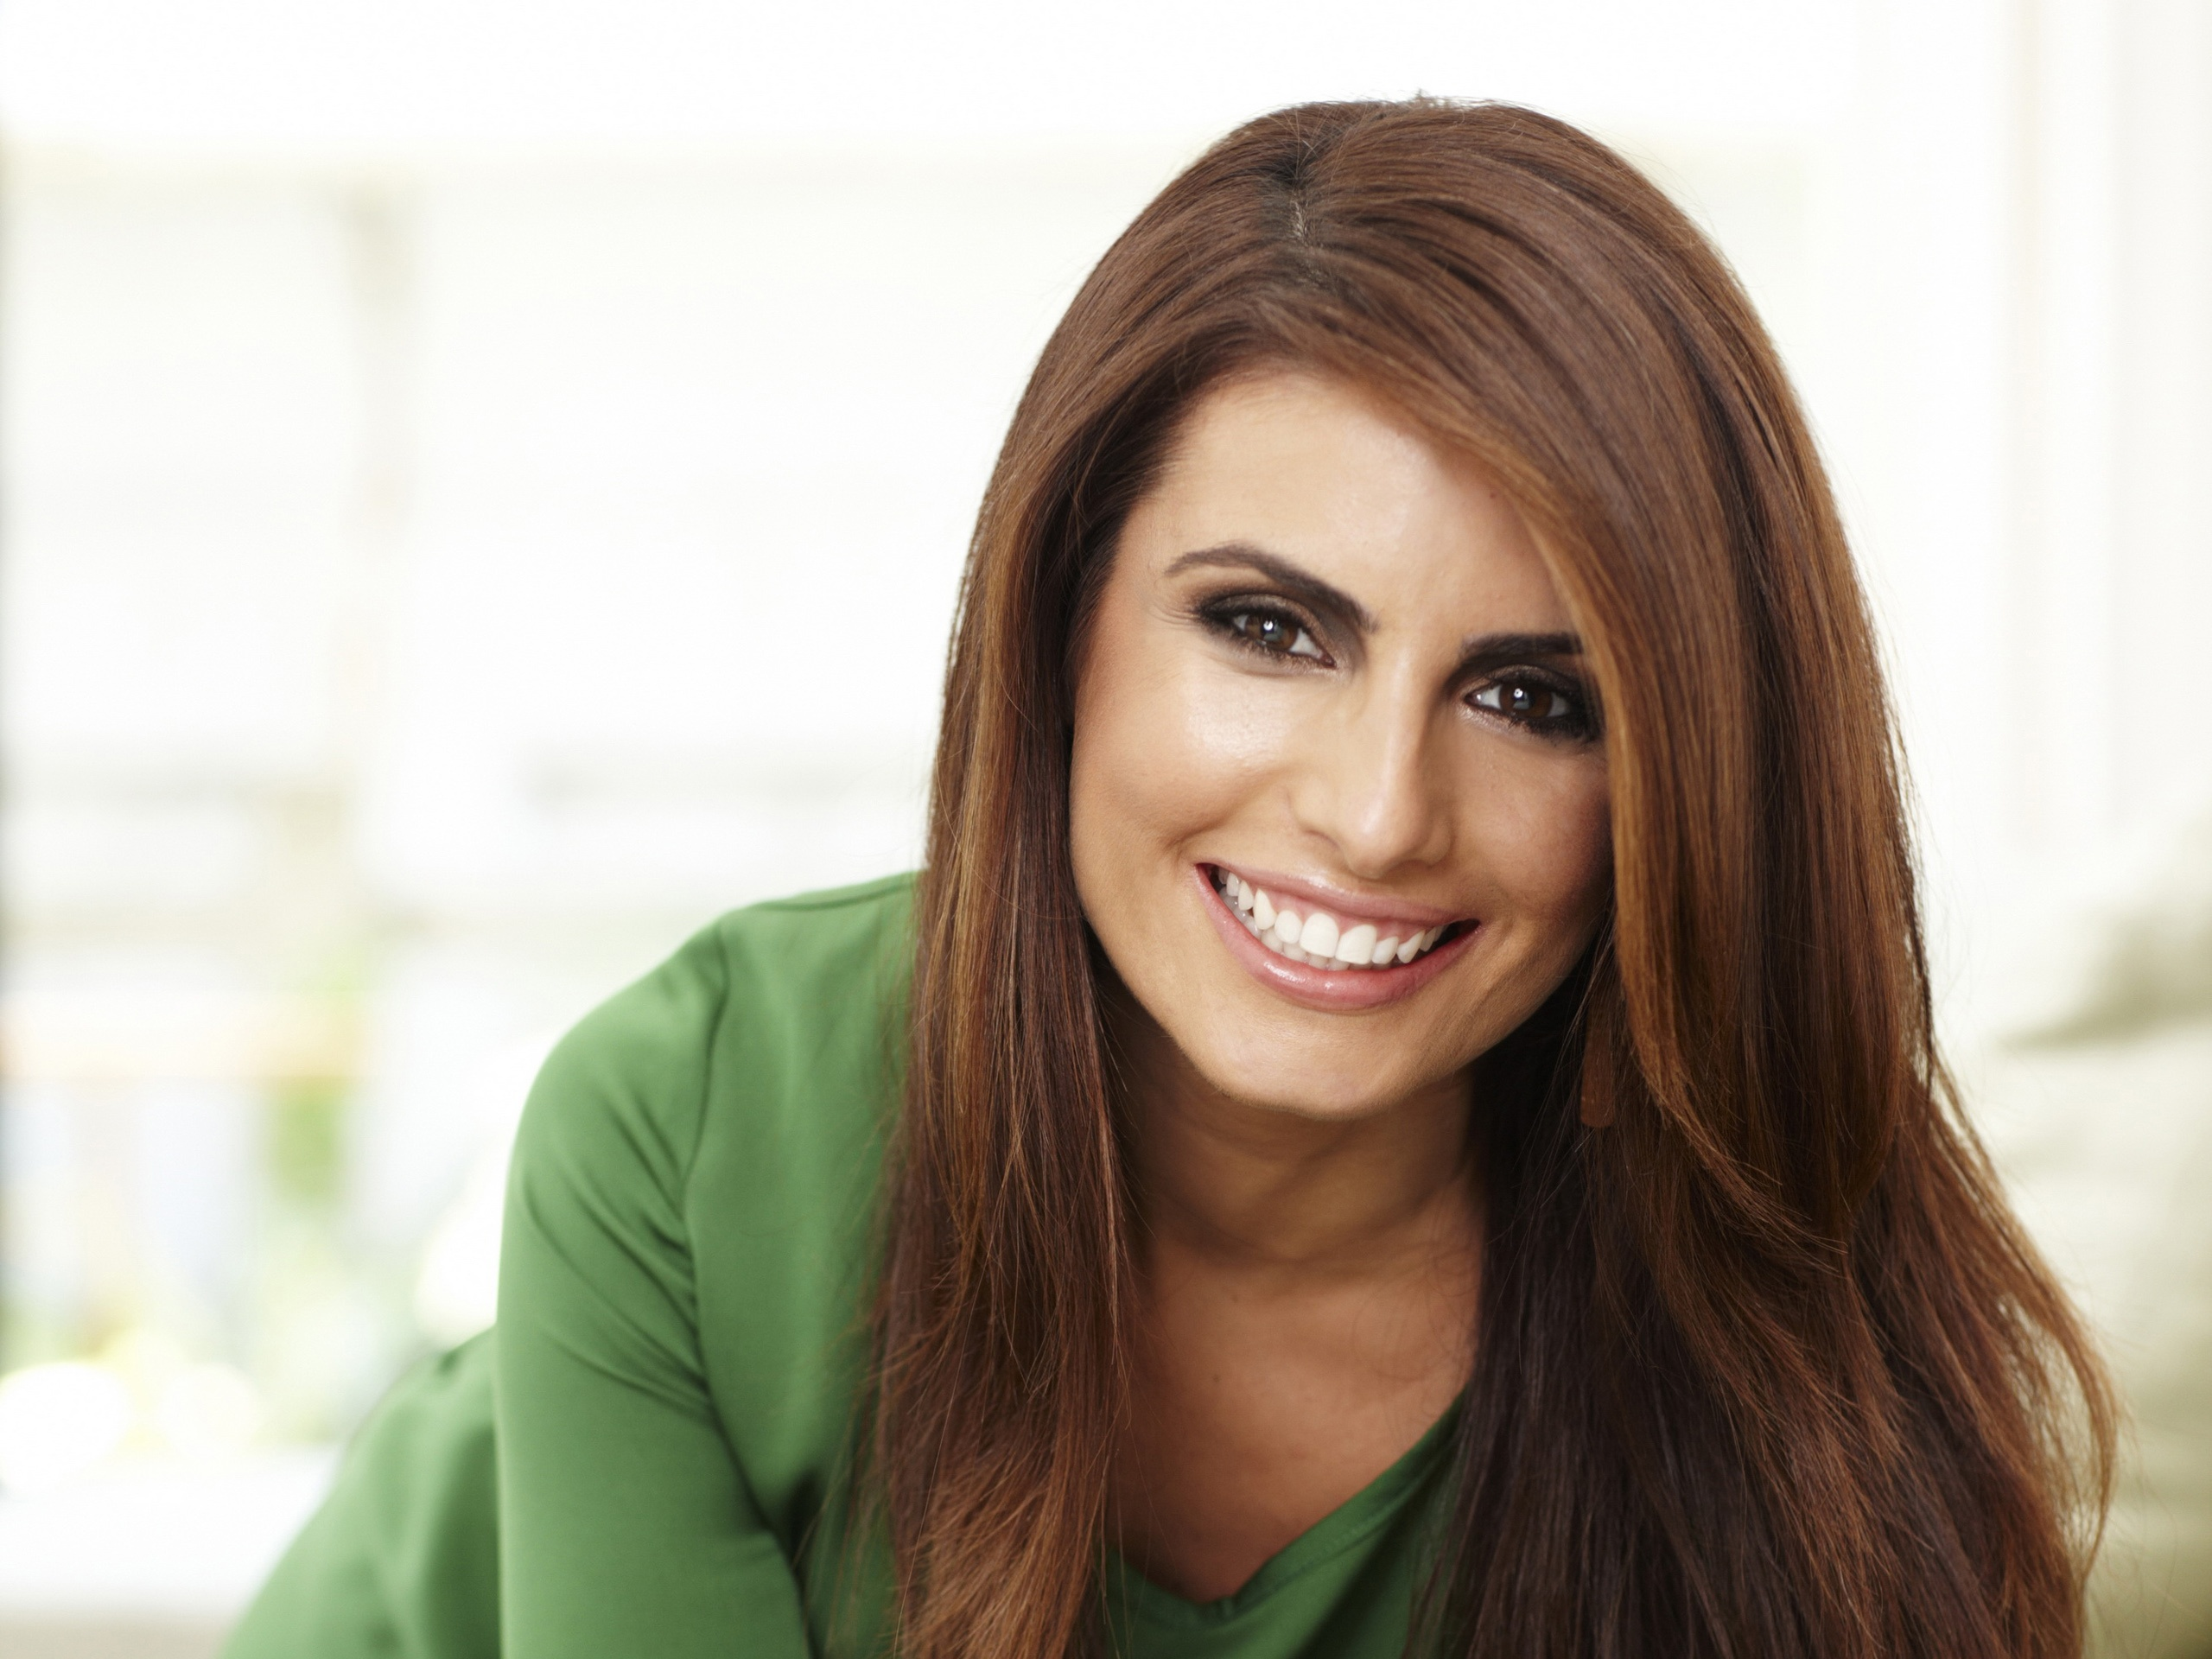 ada nicodemou miscarriageada nicodemou matrix, ada nicodemou instagram, ada nicodemou facebook, ada nicodemou leaving home and away, ada nicodemou baby, ada nicodemou home and away, ada nicodemou miscarriage, ada nicodemou husband, ada nicodemou wedding photos, ada nicodemou twitter, ada nicodemou 2015, ada nicodemou leaves summer bay, ada nicodemou stillborn, ada nicodemou and chrys xipolitas wedding, ada nicodemou wedding, ada nicodemou hot, ada nicodemou son, ada nicodemou loss, ada nicodemou leaves, ada nicodemou dancing with the stars